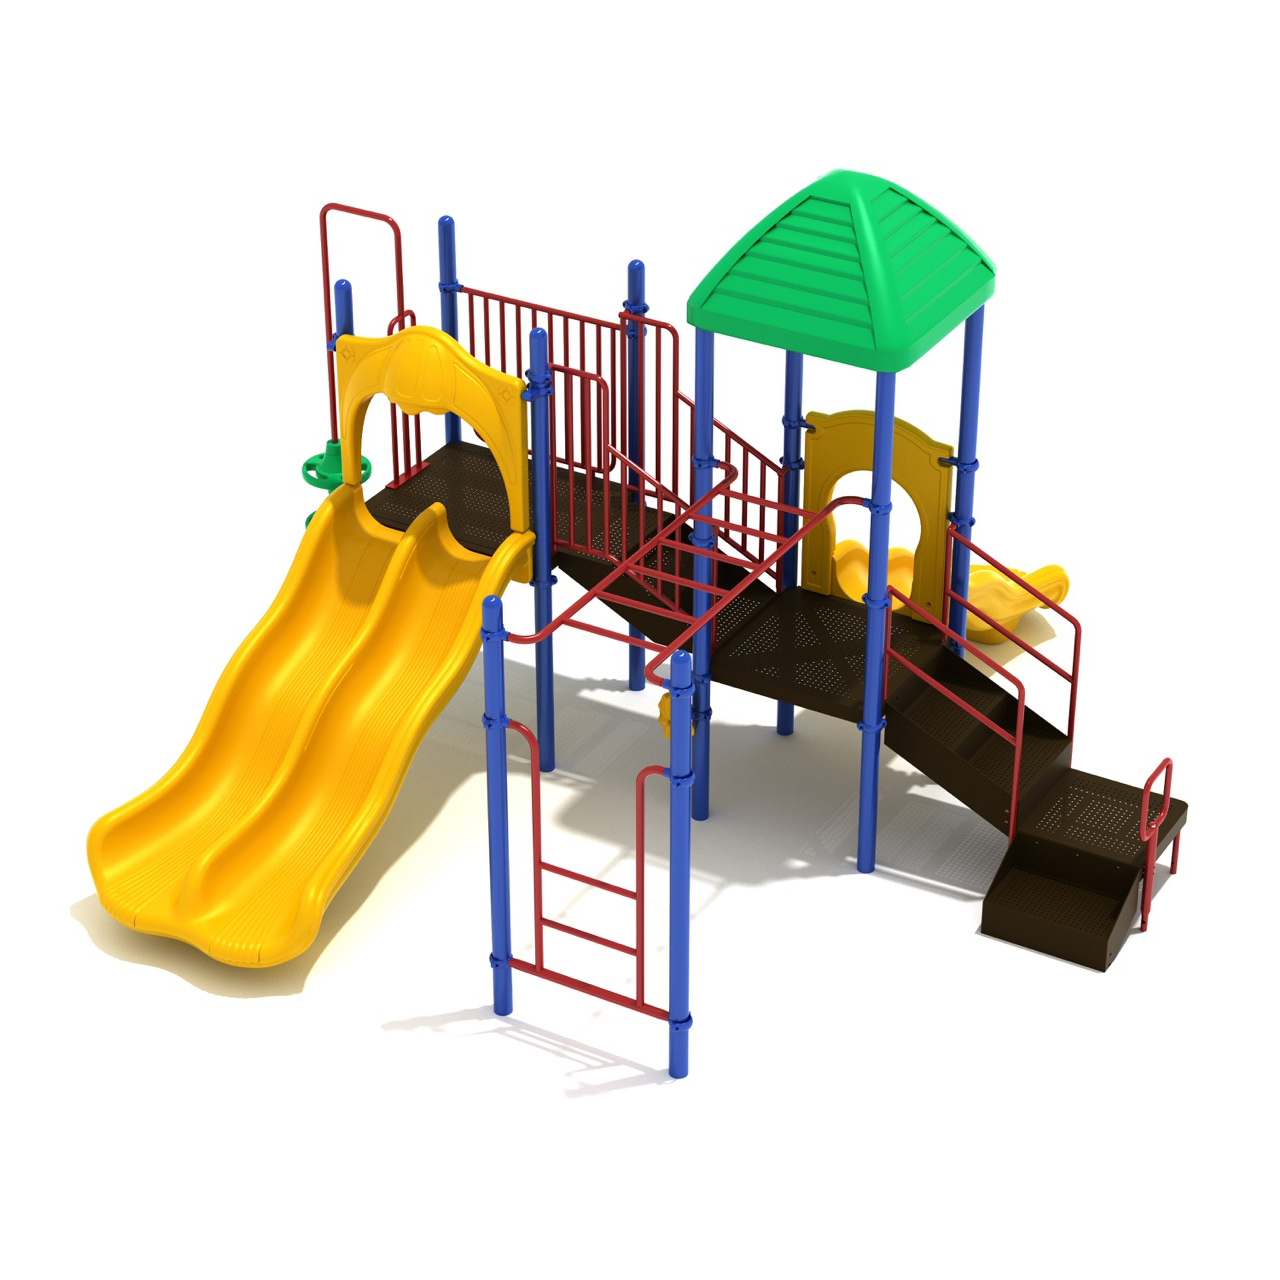 Grays Harbor Play System By Playground Equipment Dot Com